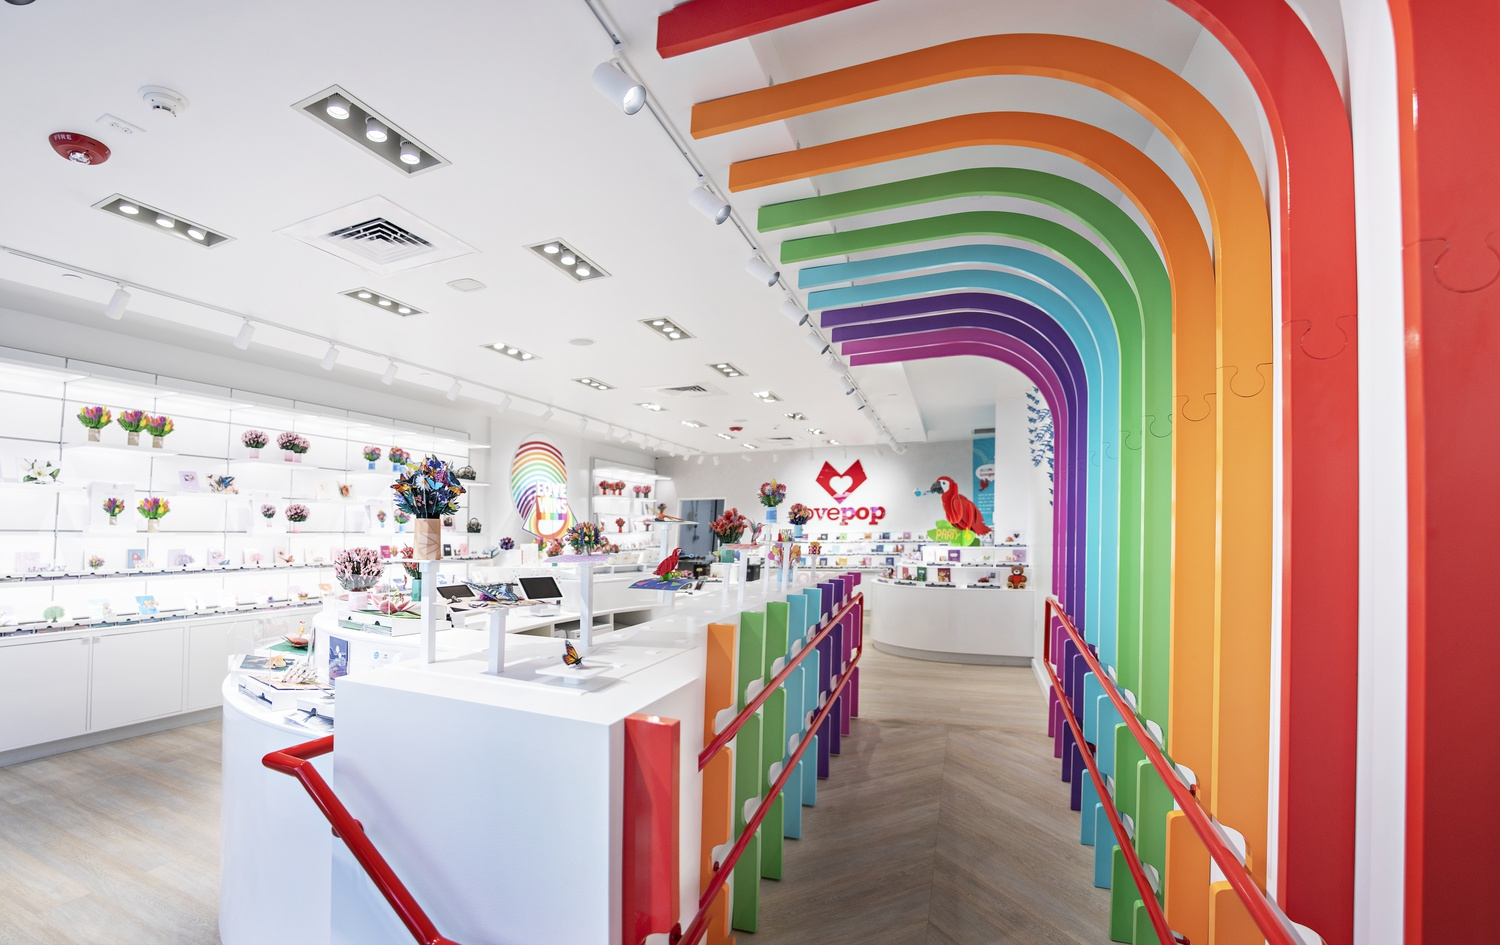 Located at 18 JFK St., Lovepop will offer a variety of 3D products, such as cards, flower bouquets, and giant pop-up gifts.